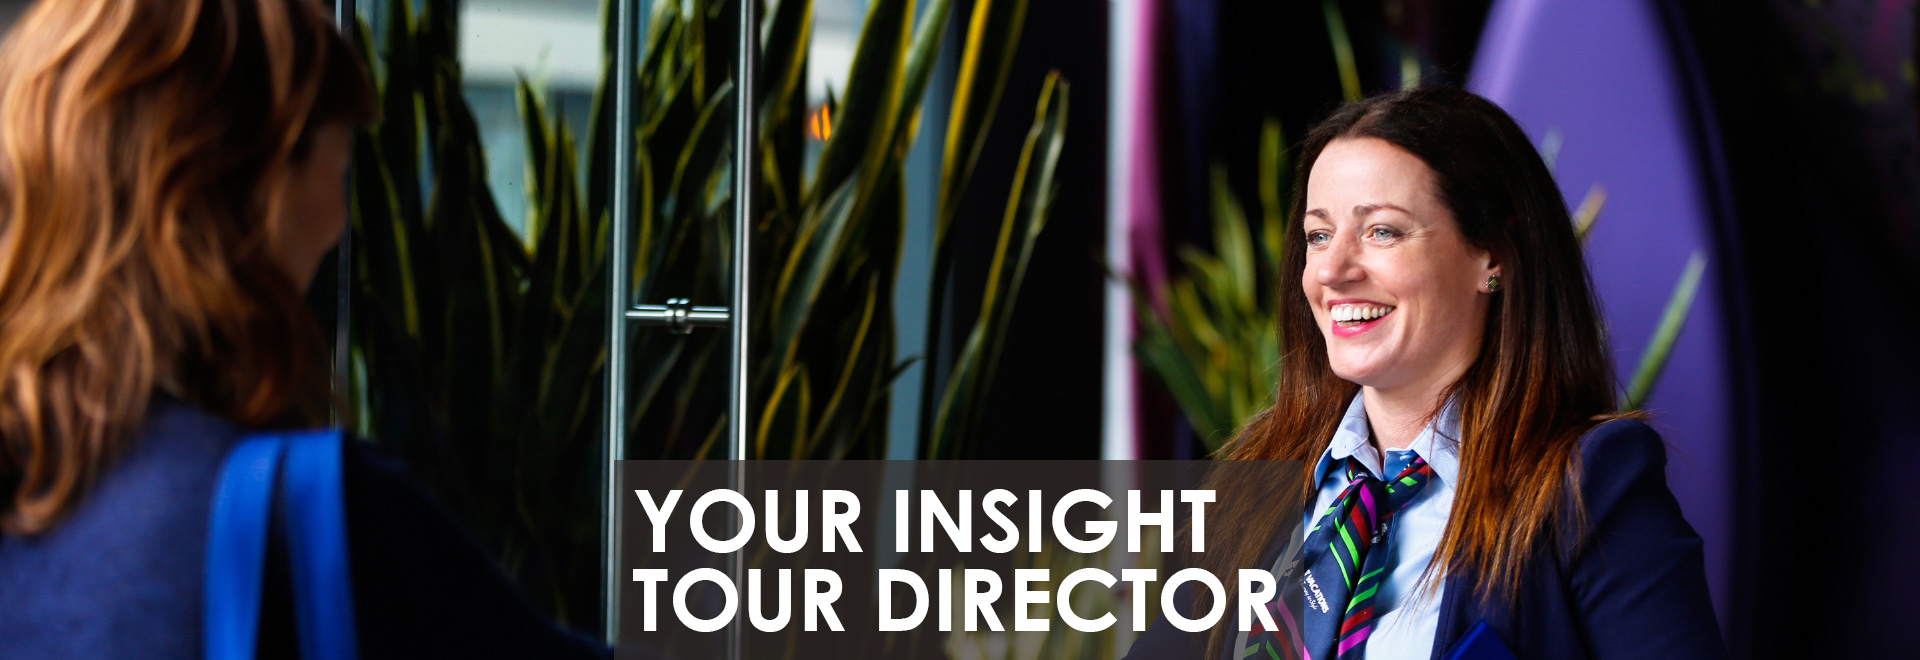 Your Insight Tour Director